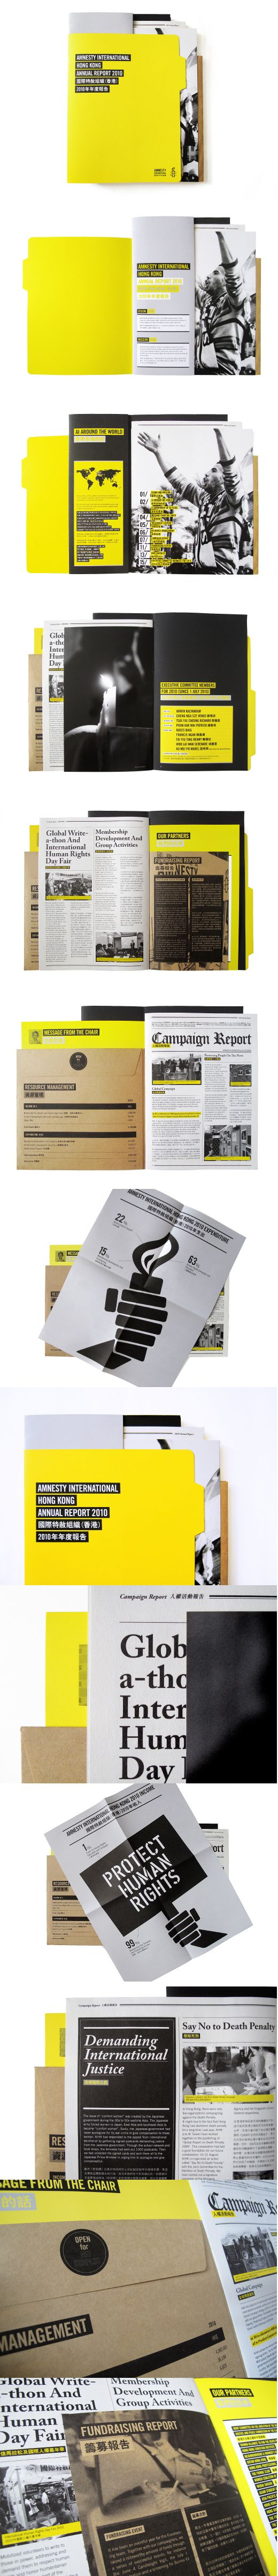 tgif | amnesty international hong kong 2010 annual report